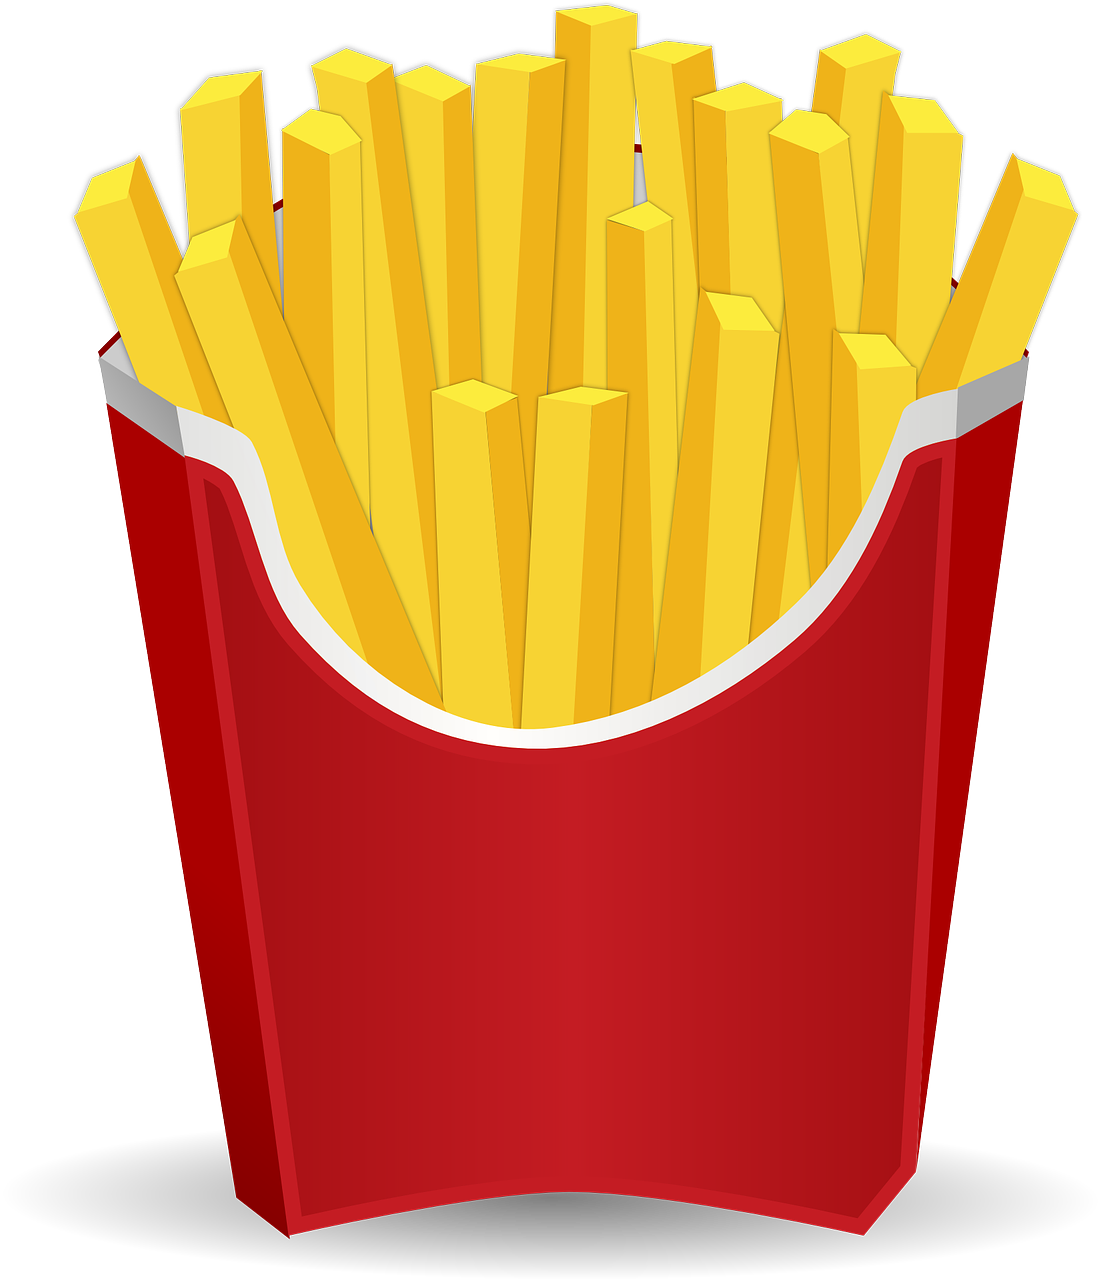 animated-chips-and-french-fries-image-0013